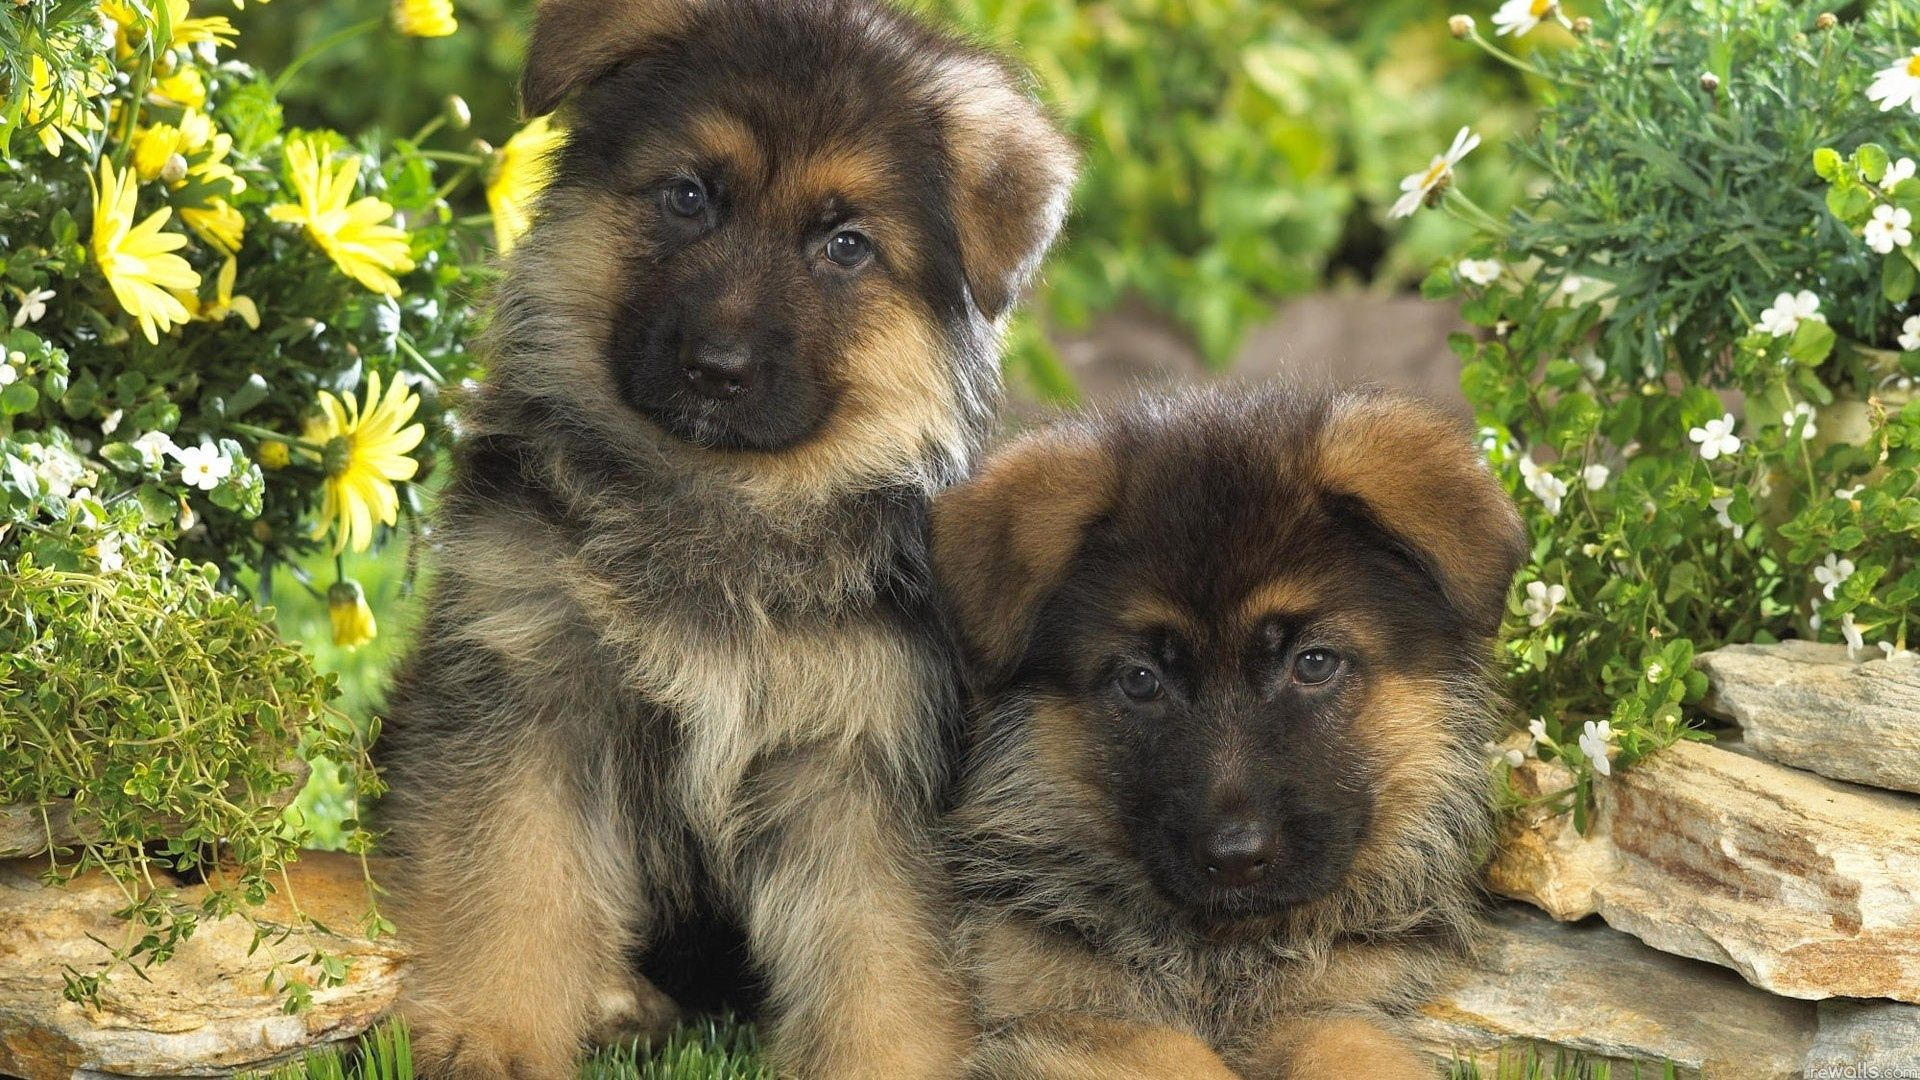 101235 download wallpaper Animals, Dogs, Grass, Couple, Pair, Fur, Puppies screensavers and pictures for free